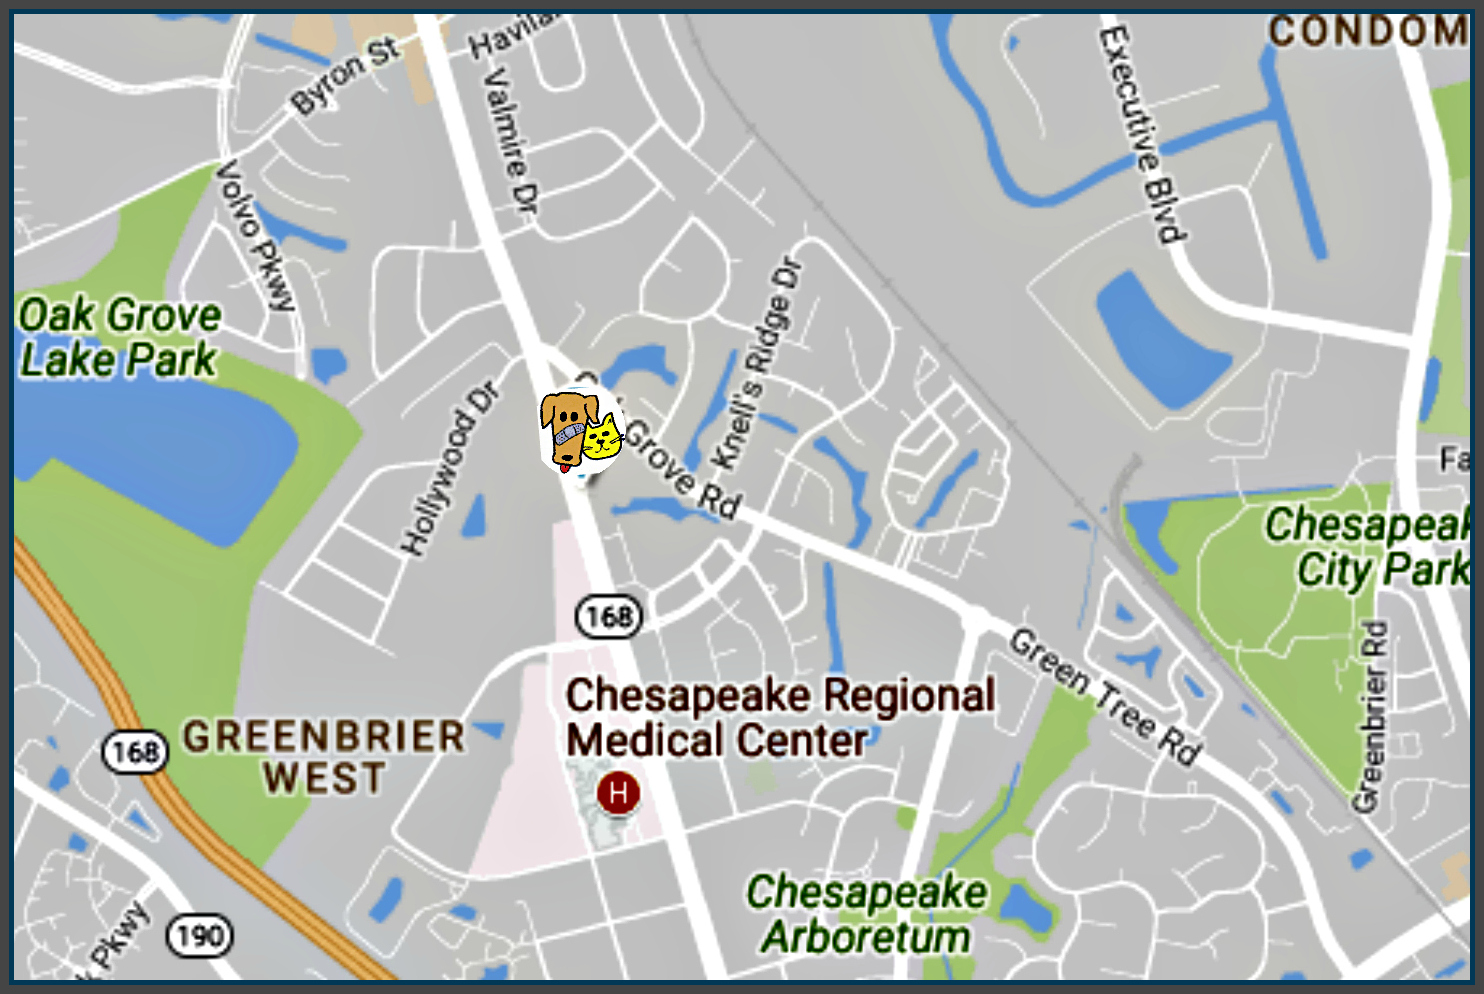 Animal Medical Clinic of Chesapeake 921 N Battlefield Blvd, Chesapeake, Va 23320 Great Bridge Hampton Roads Map Location